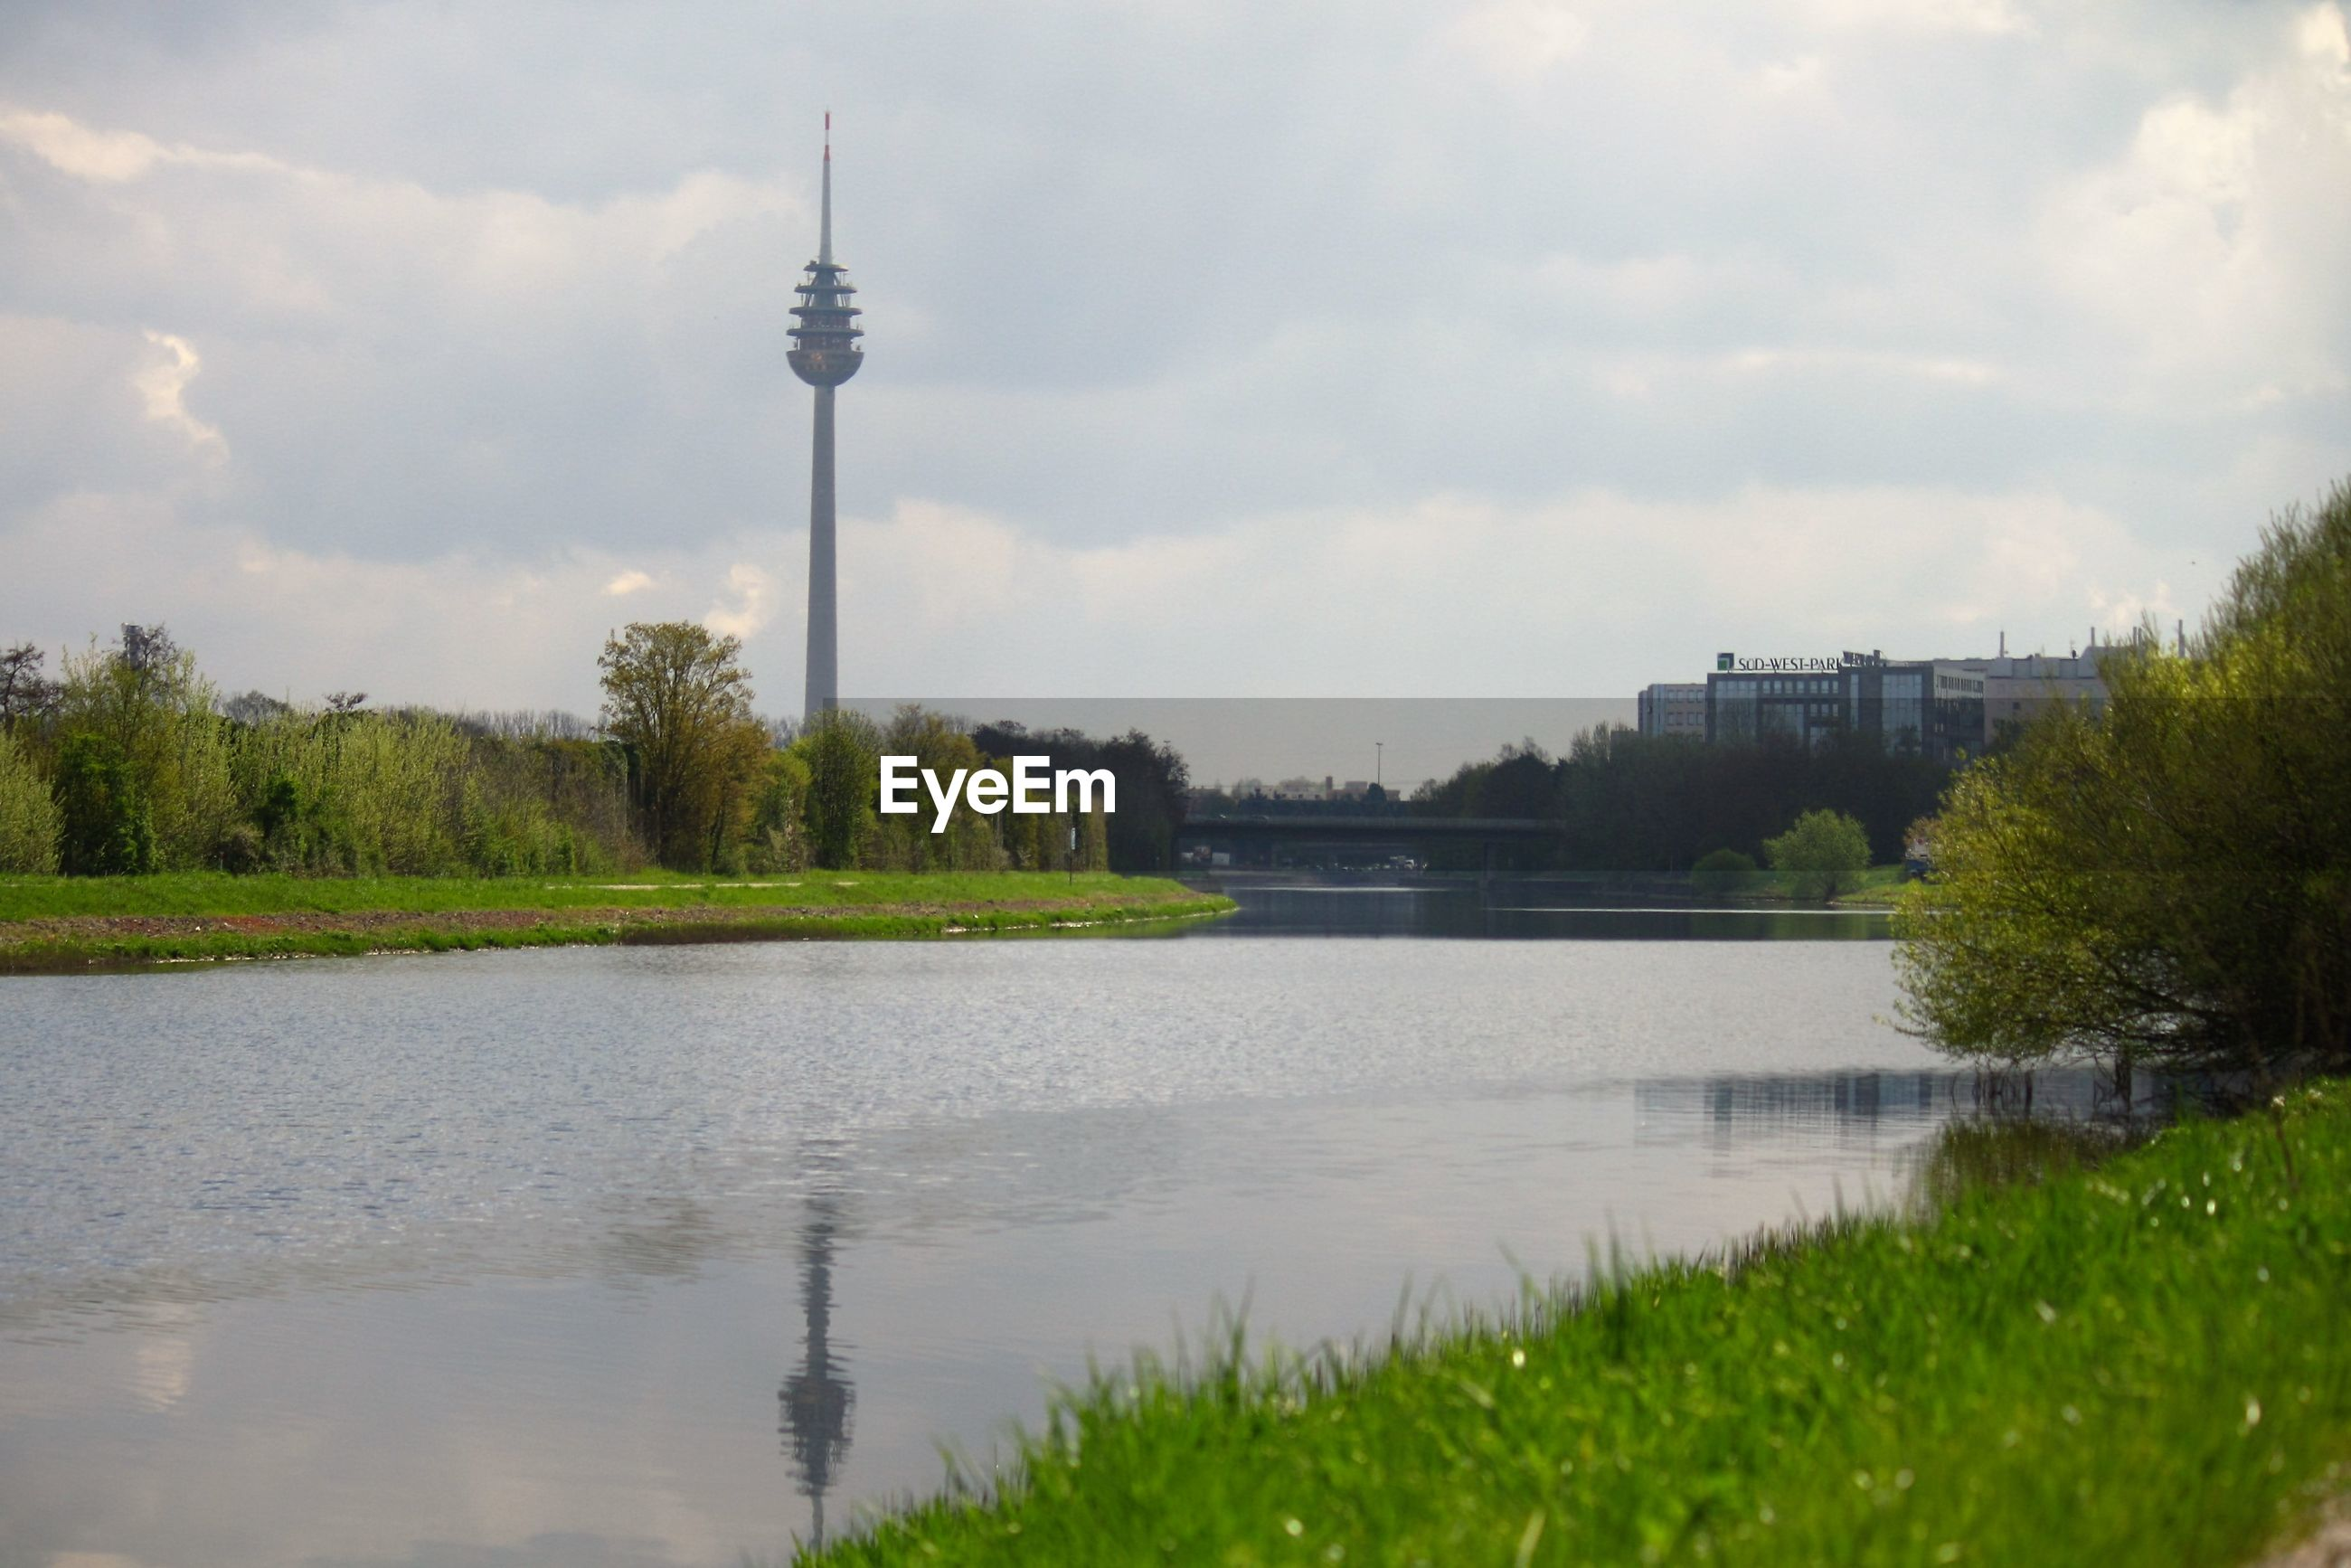 Communication tower by river against sky in city